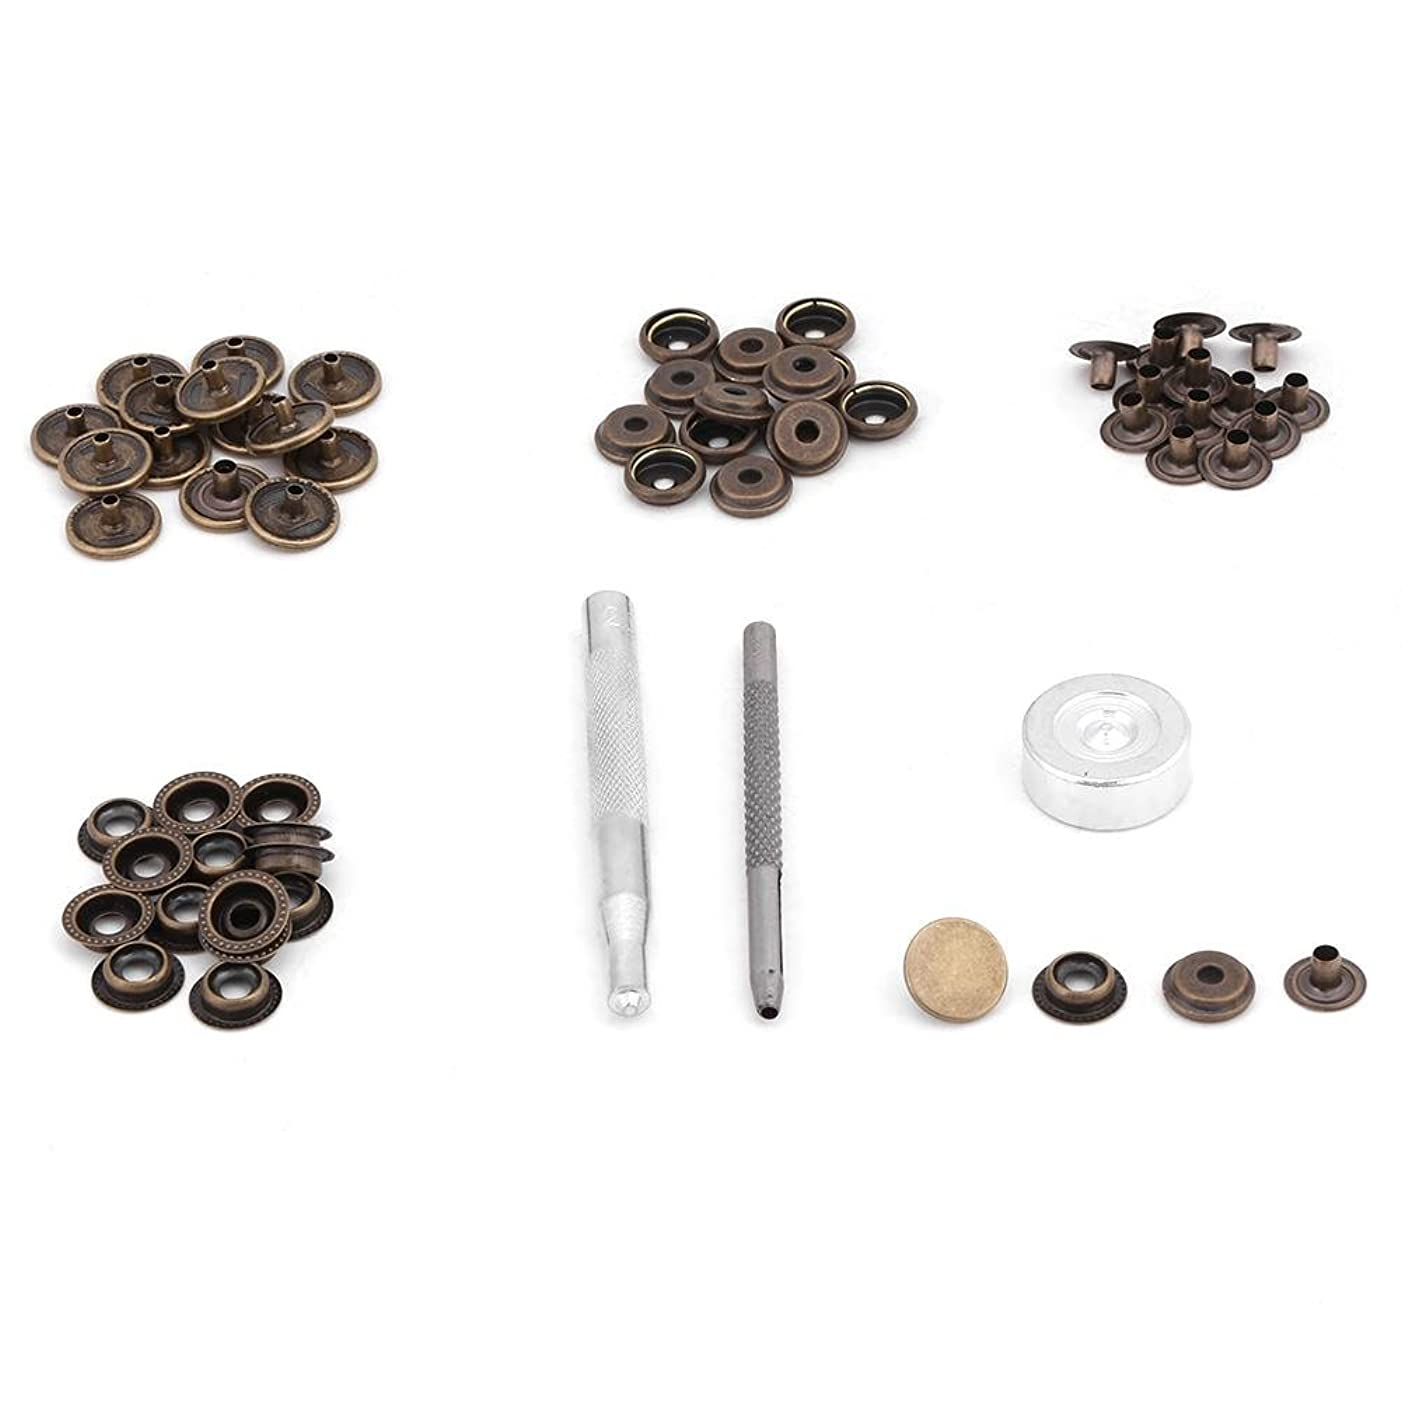 15 Set Snap Fastener Kit Button Tool Press Studs Fastener Snap on Set Clothing Snaps Kit Fixing Tool for Fabric, Leather Craft(bronze)